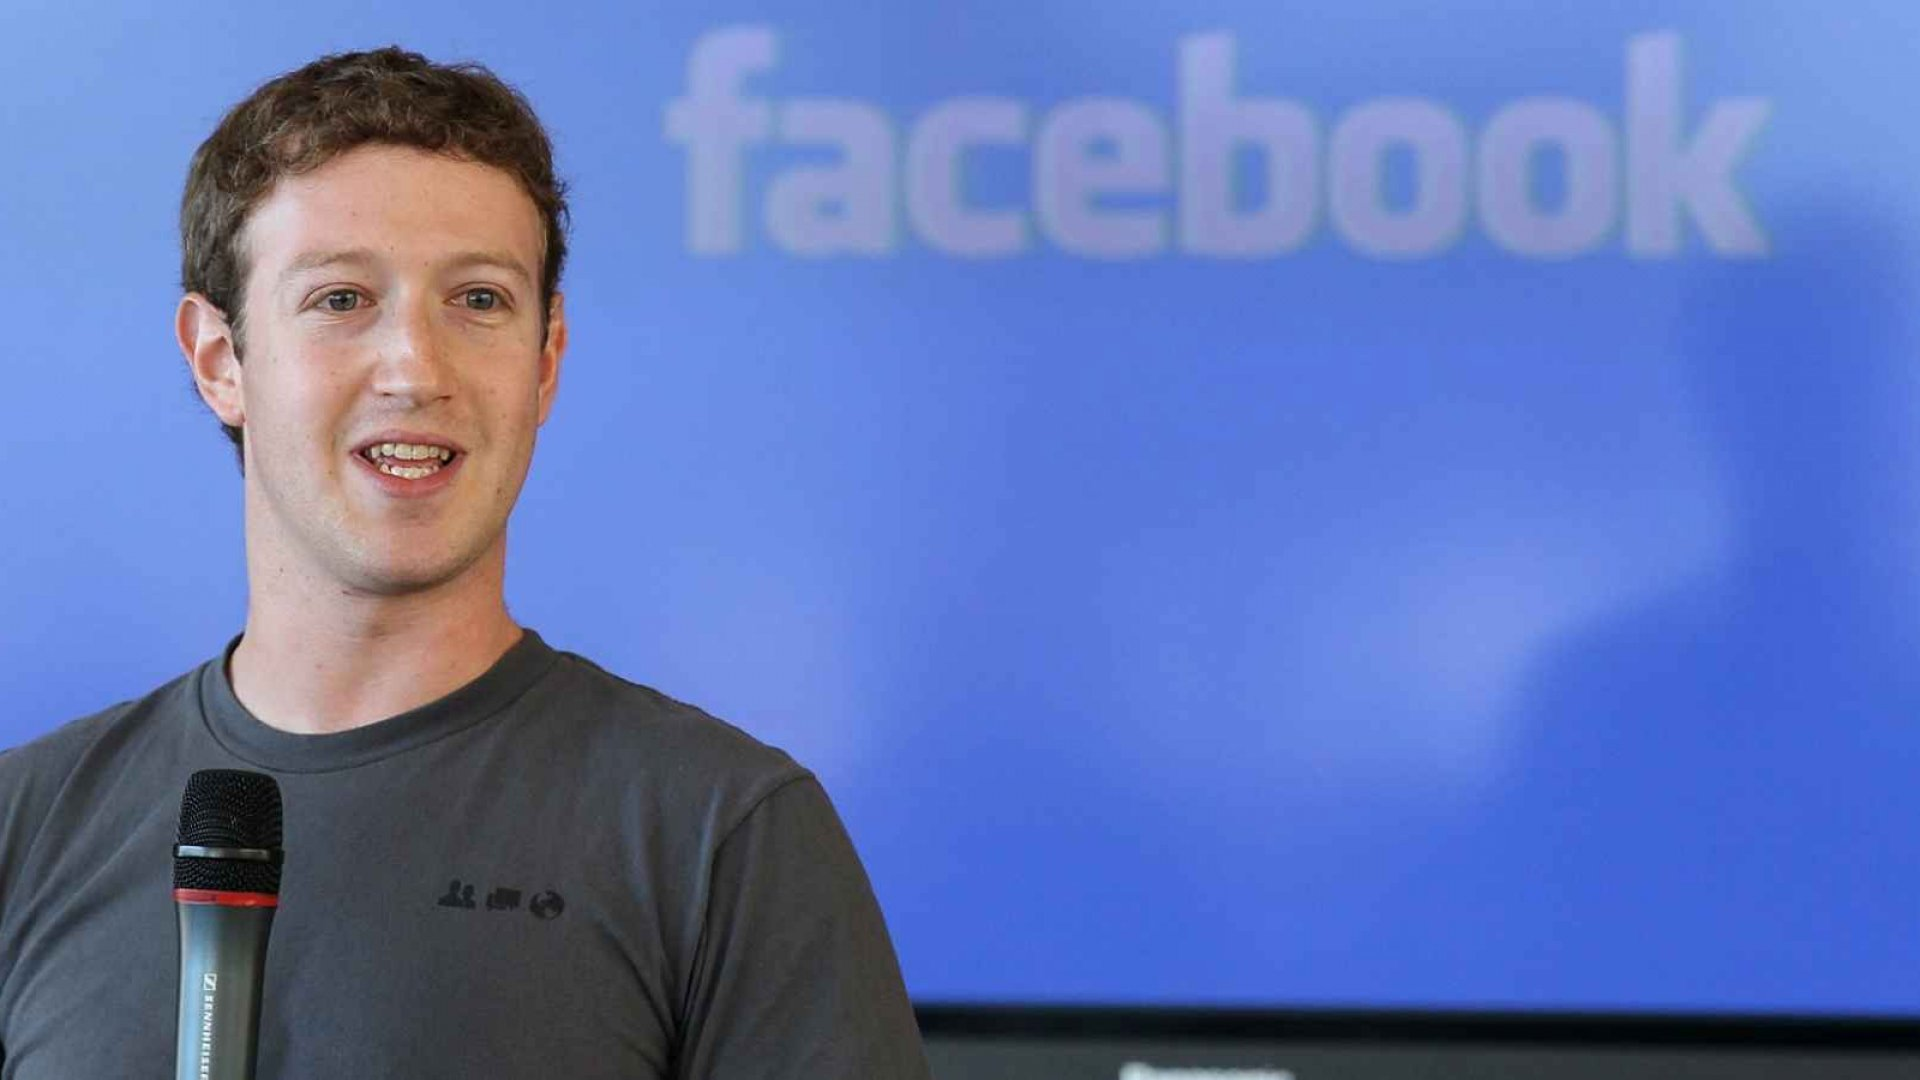 11 Companies That Tried to Acquire Facebook